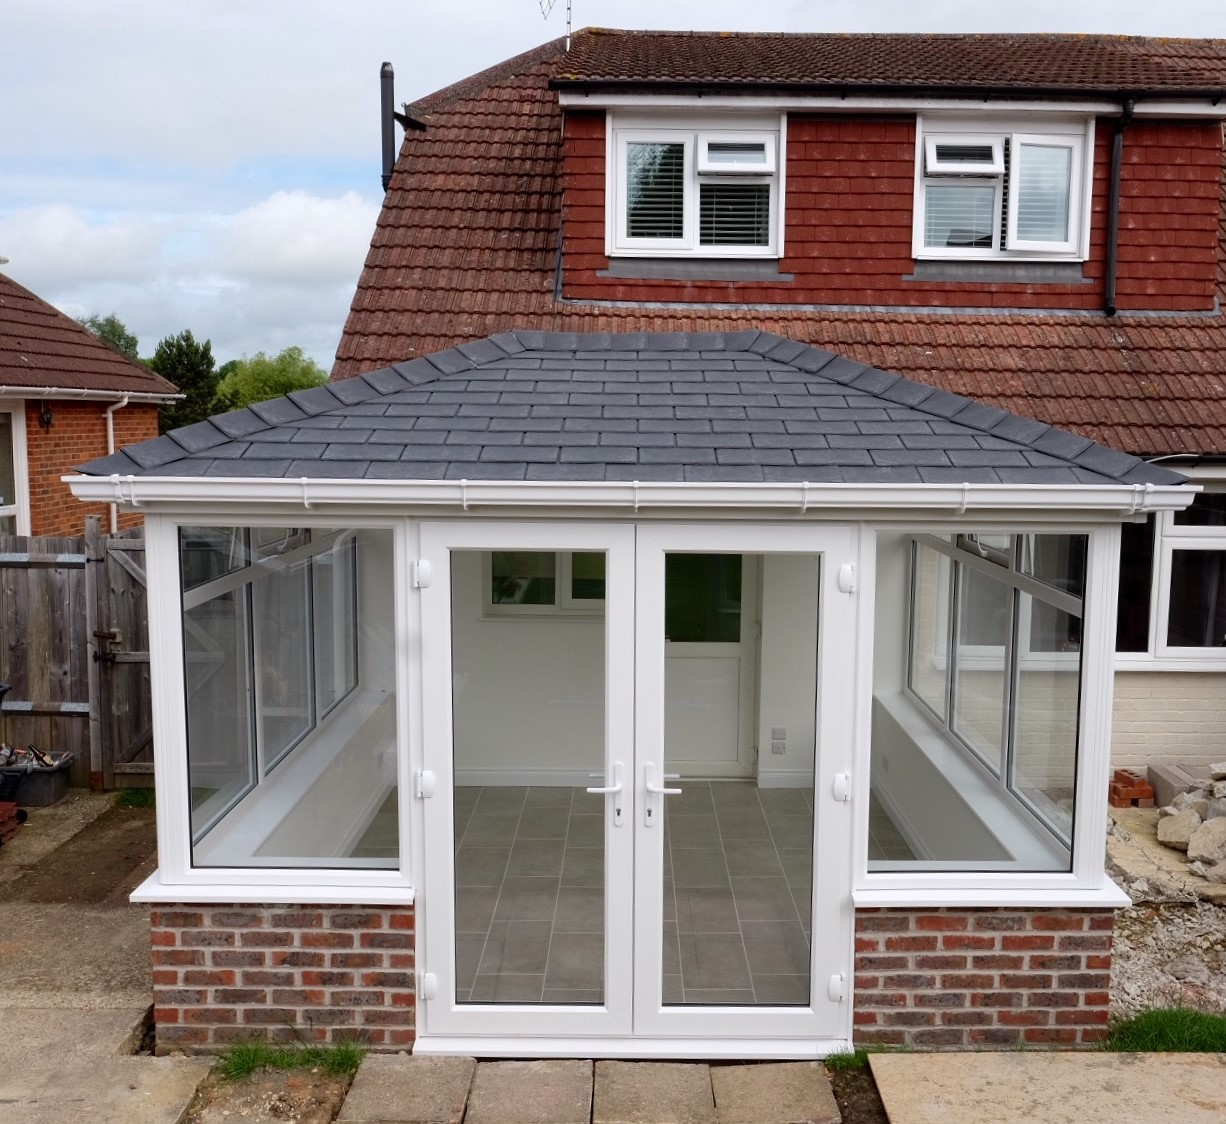 Solid Roof conservatory from Leka Roofs